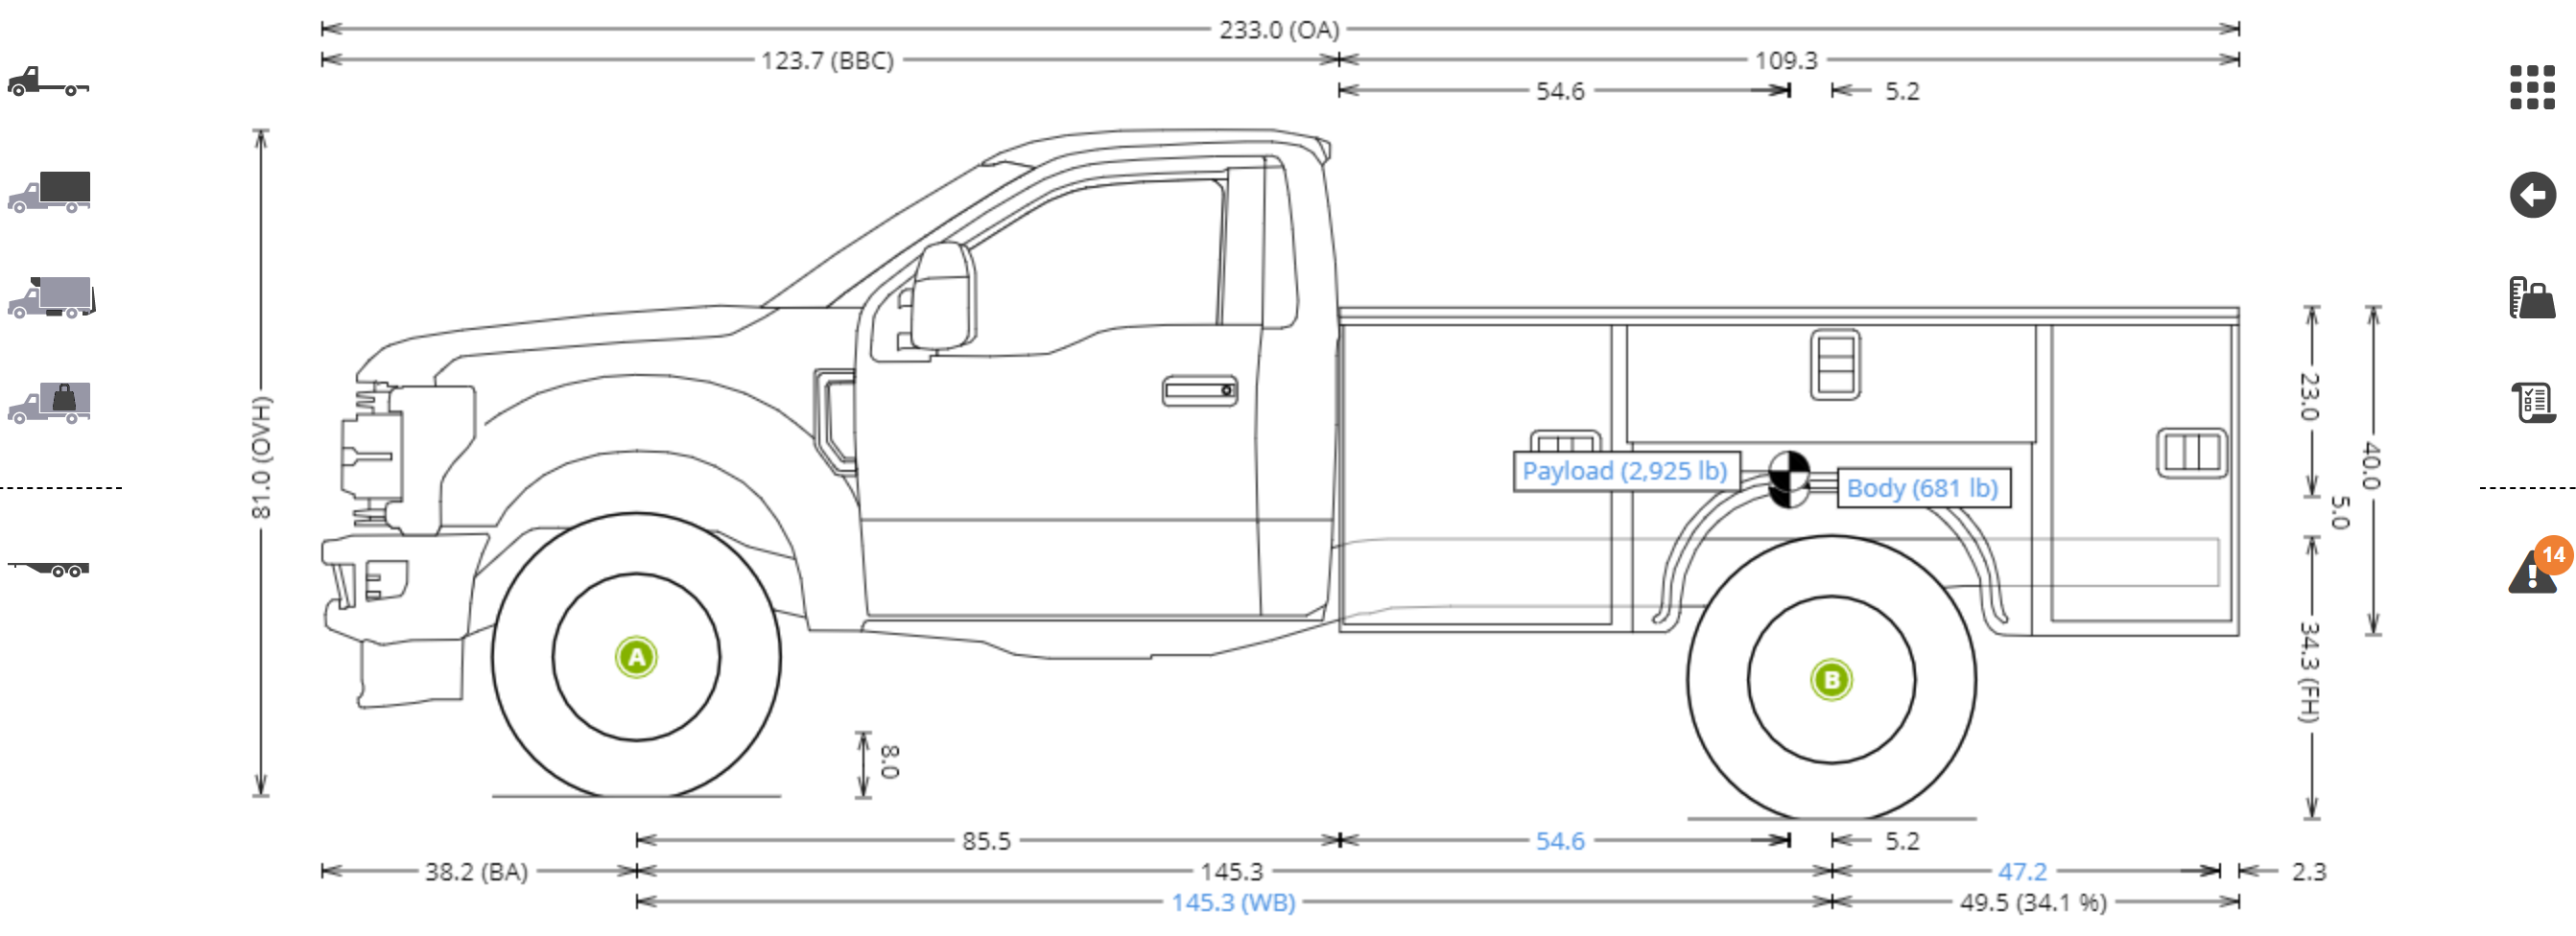 Calculate axle weights for work truck with service body